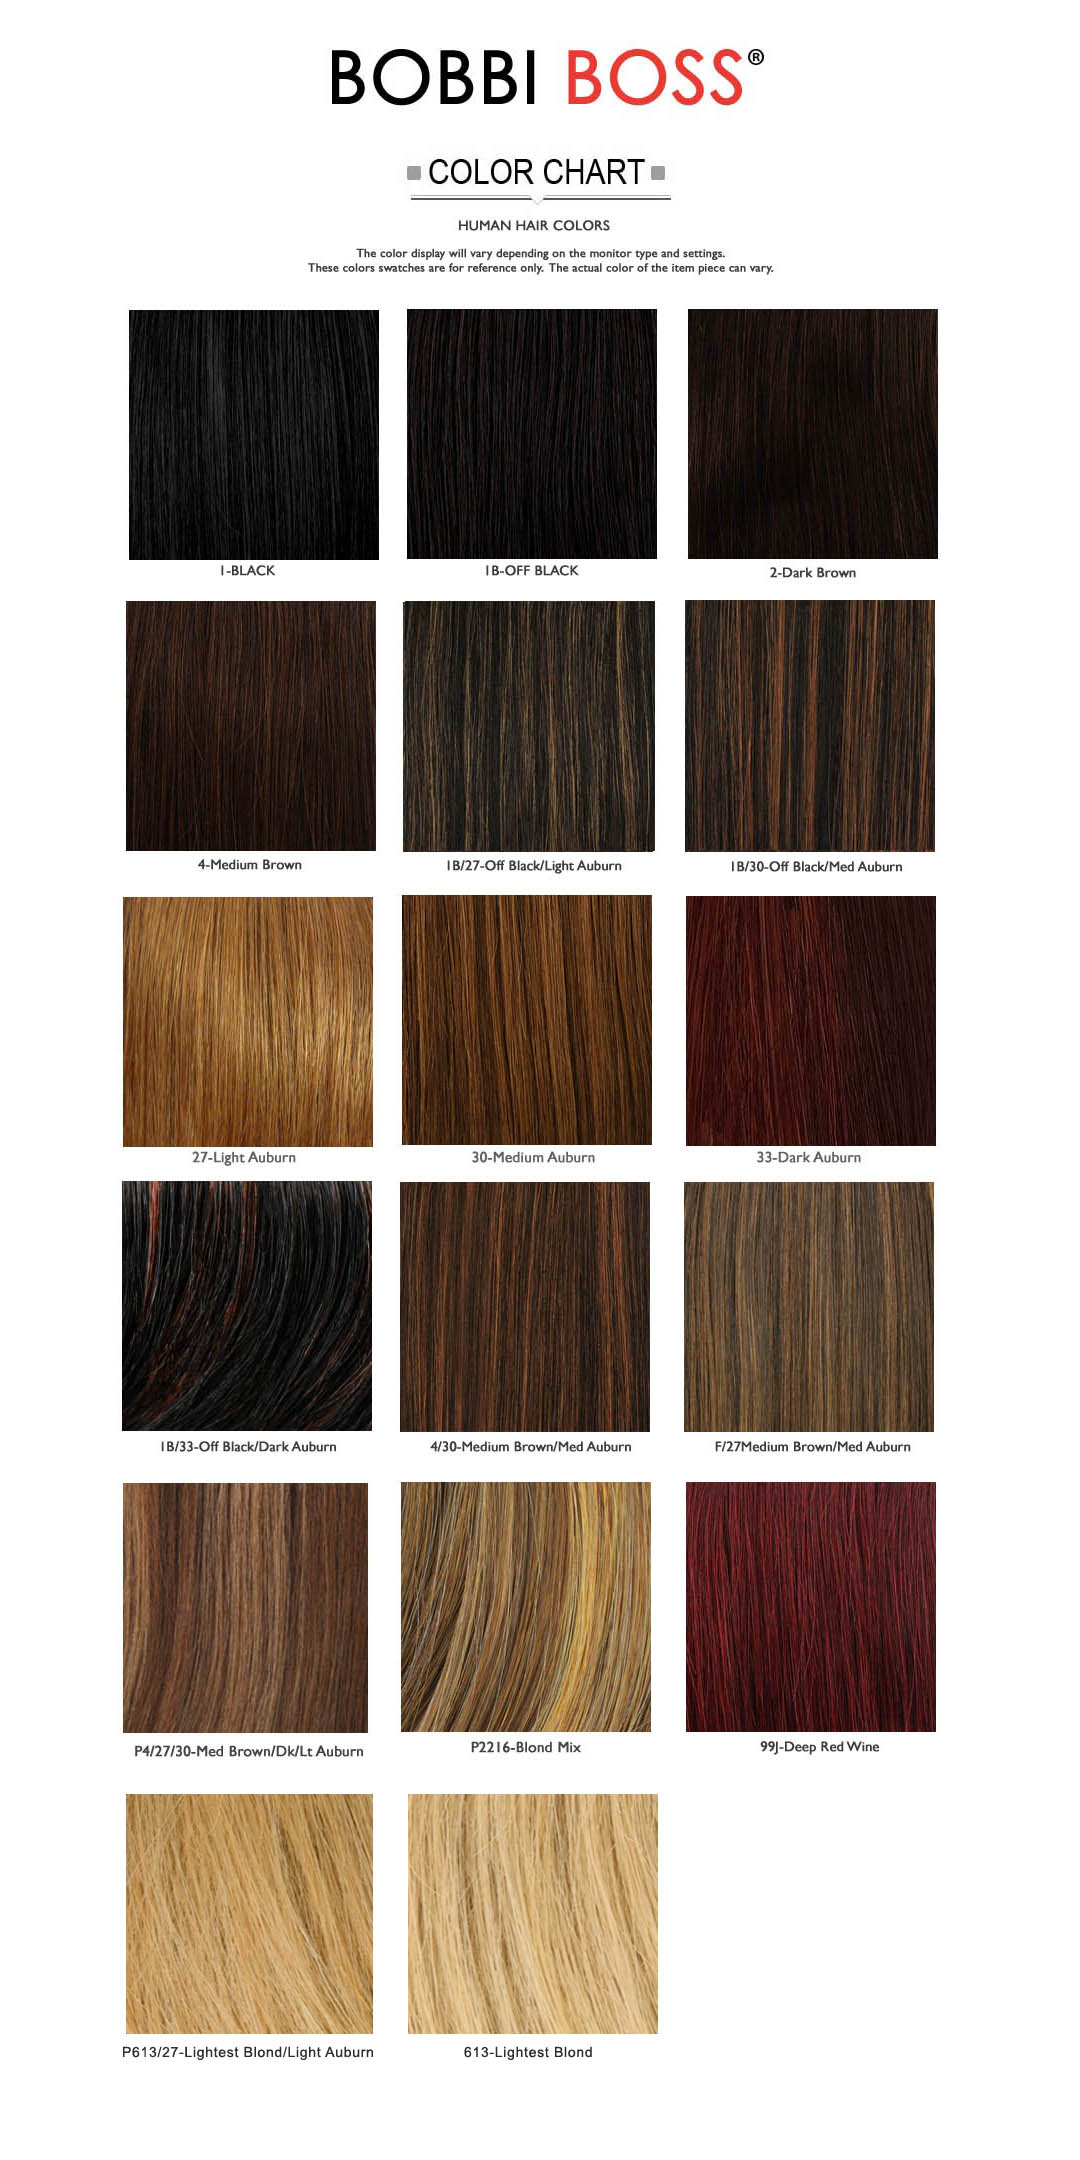 bobbi boss hair color chart